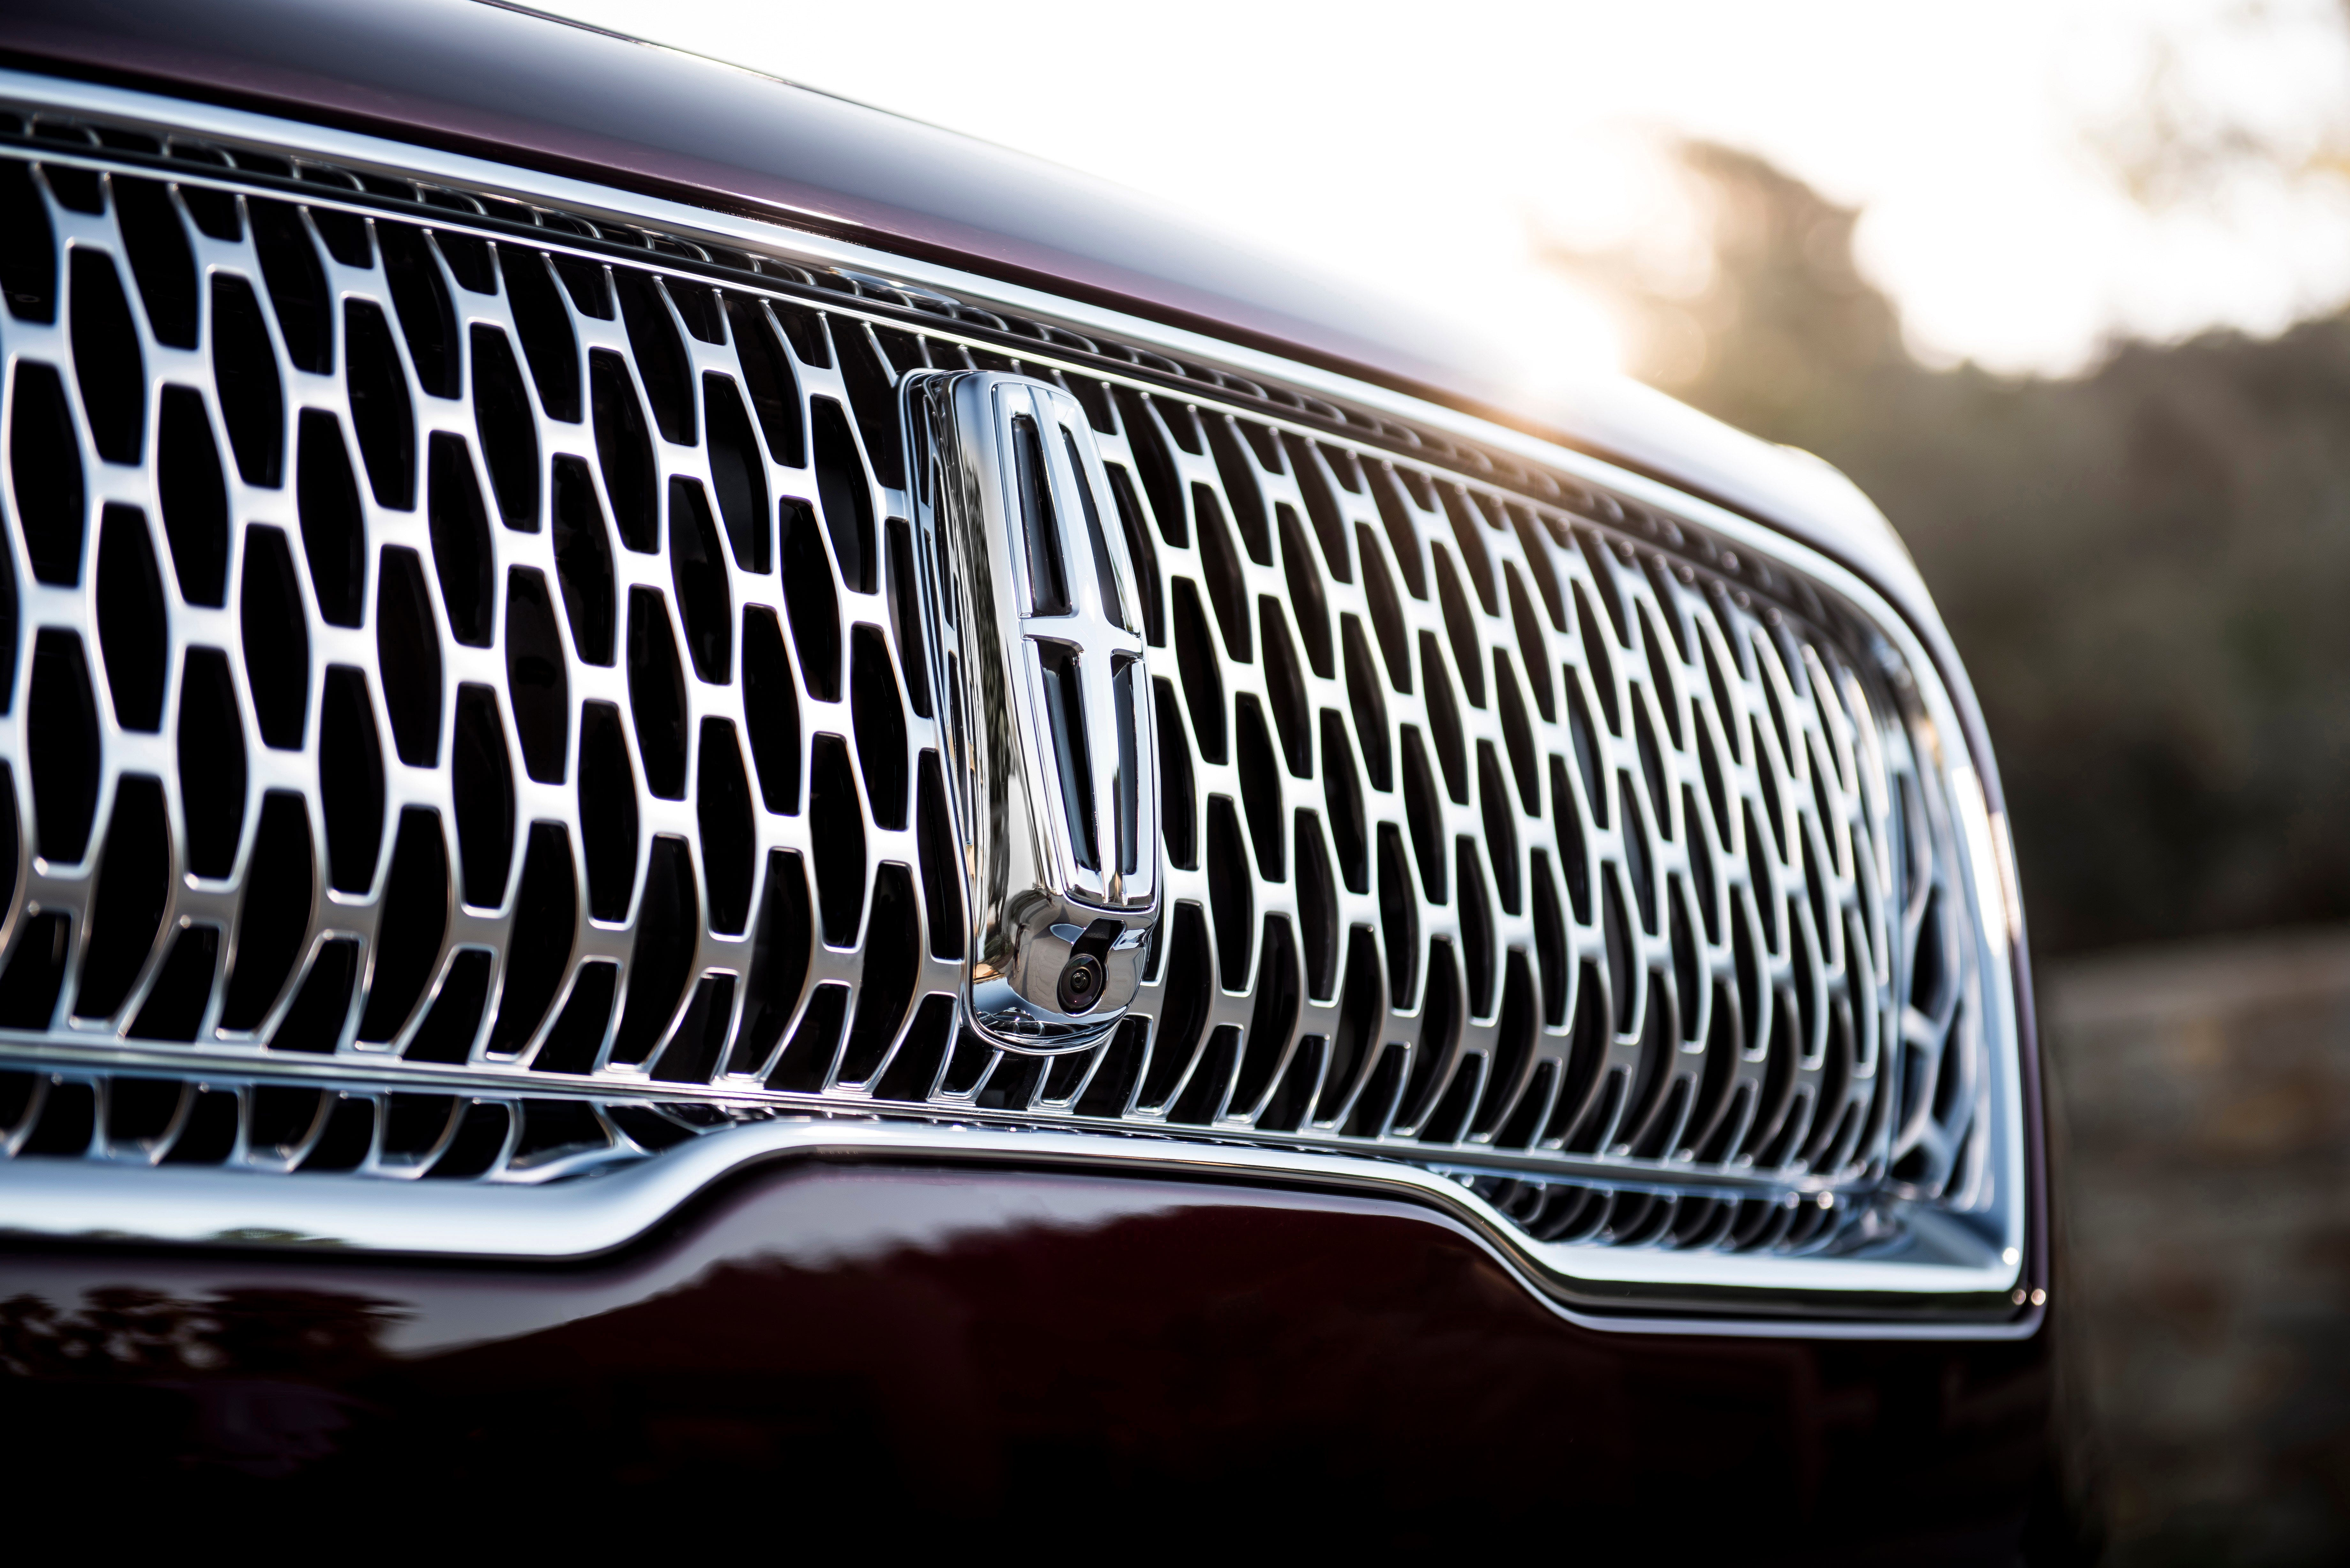 Gala, an opulent new Lincoln Black Label theme, takes